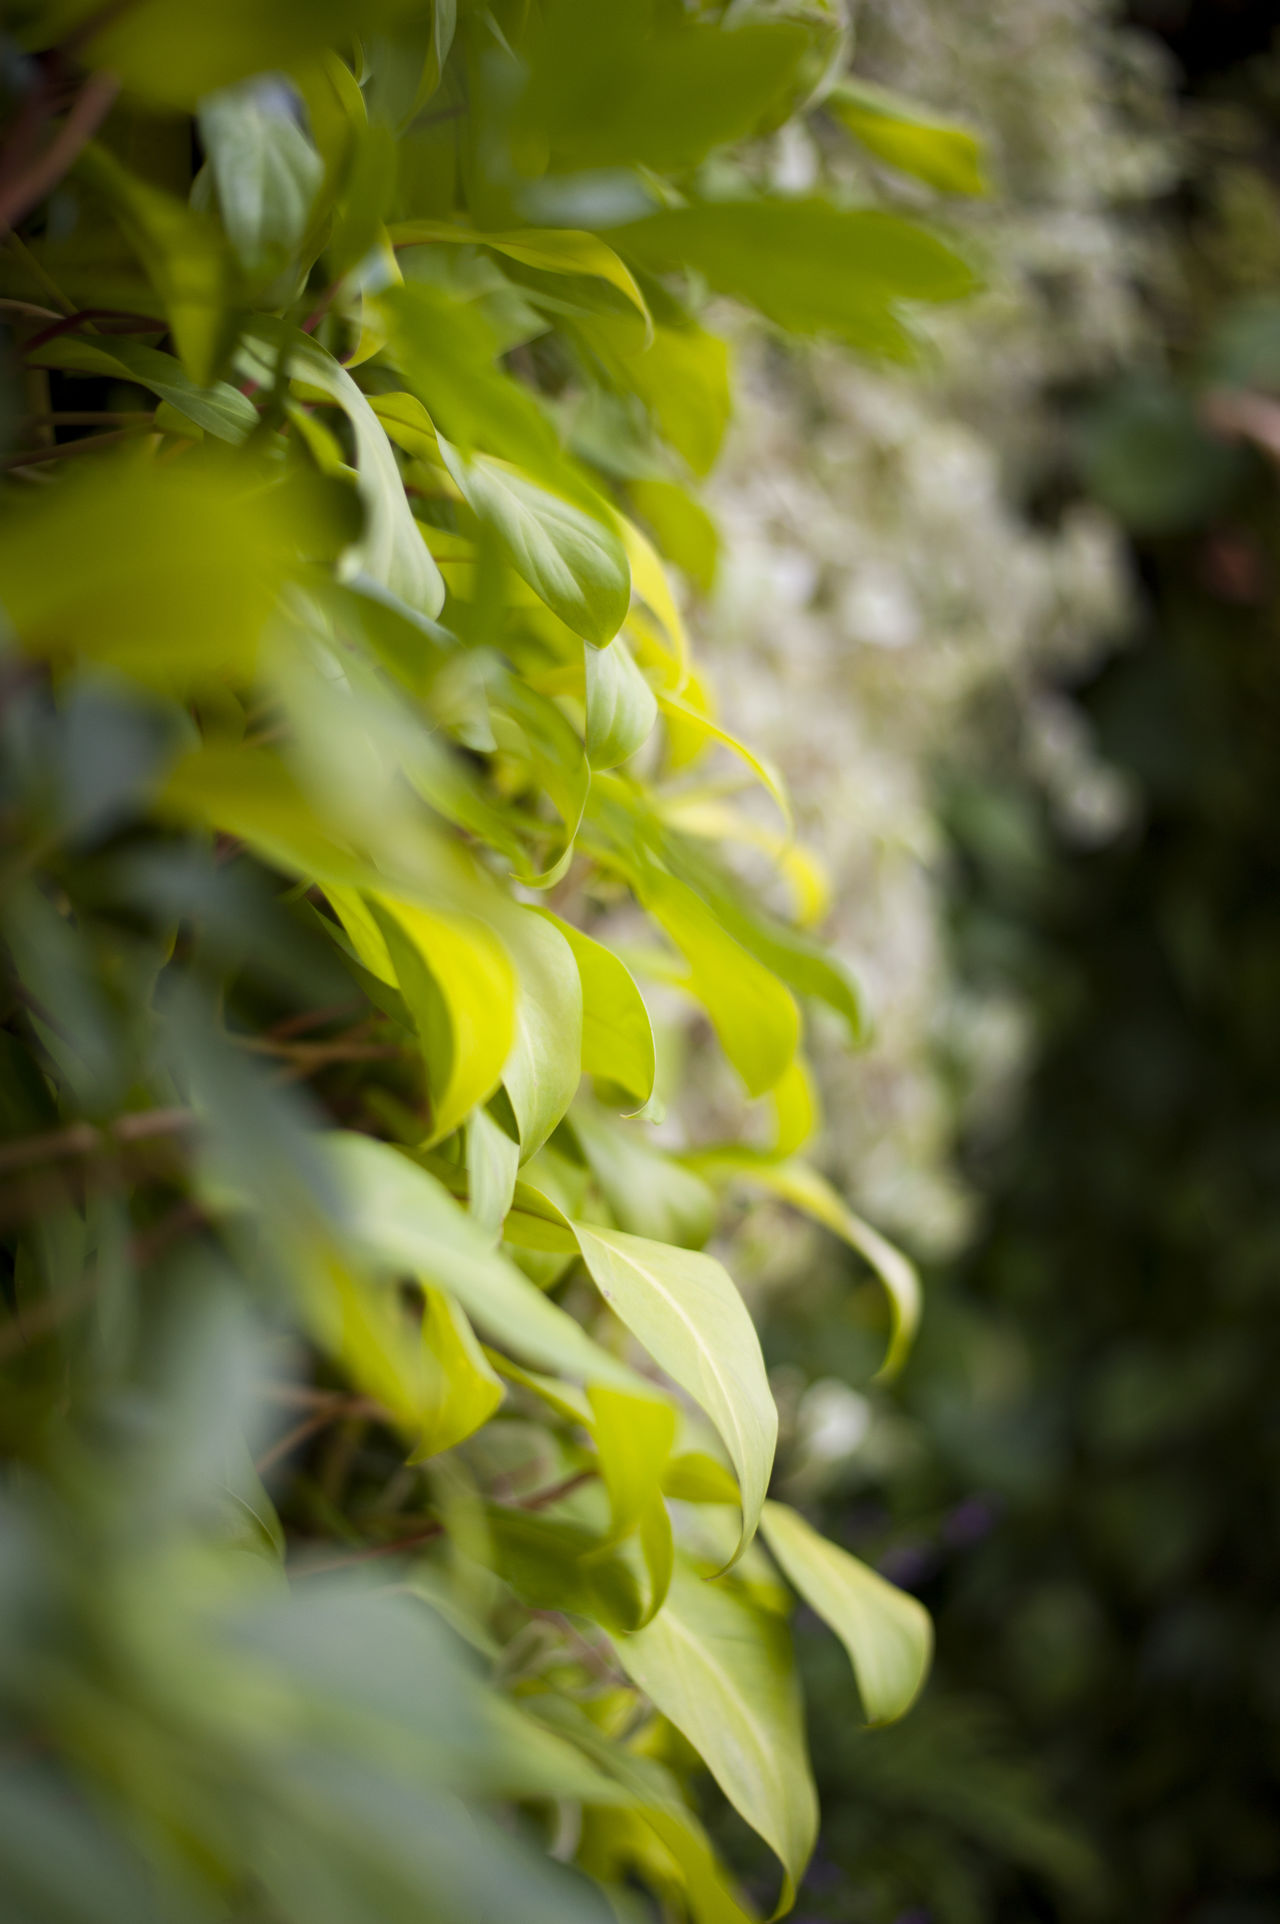 Nature in abundance. Background Backgrounds Beauty In Nature Bokeh Close-up Day Flower Focus Focus On Foreground Foilage Green Green Wall Growing Growth Leaf Leaves Nature No People Nobody Outdoors Plant Wall Water White Yellow